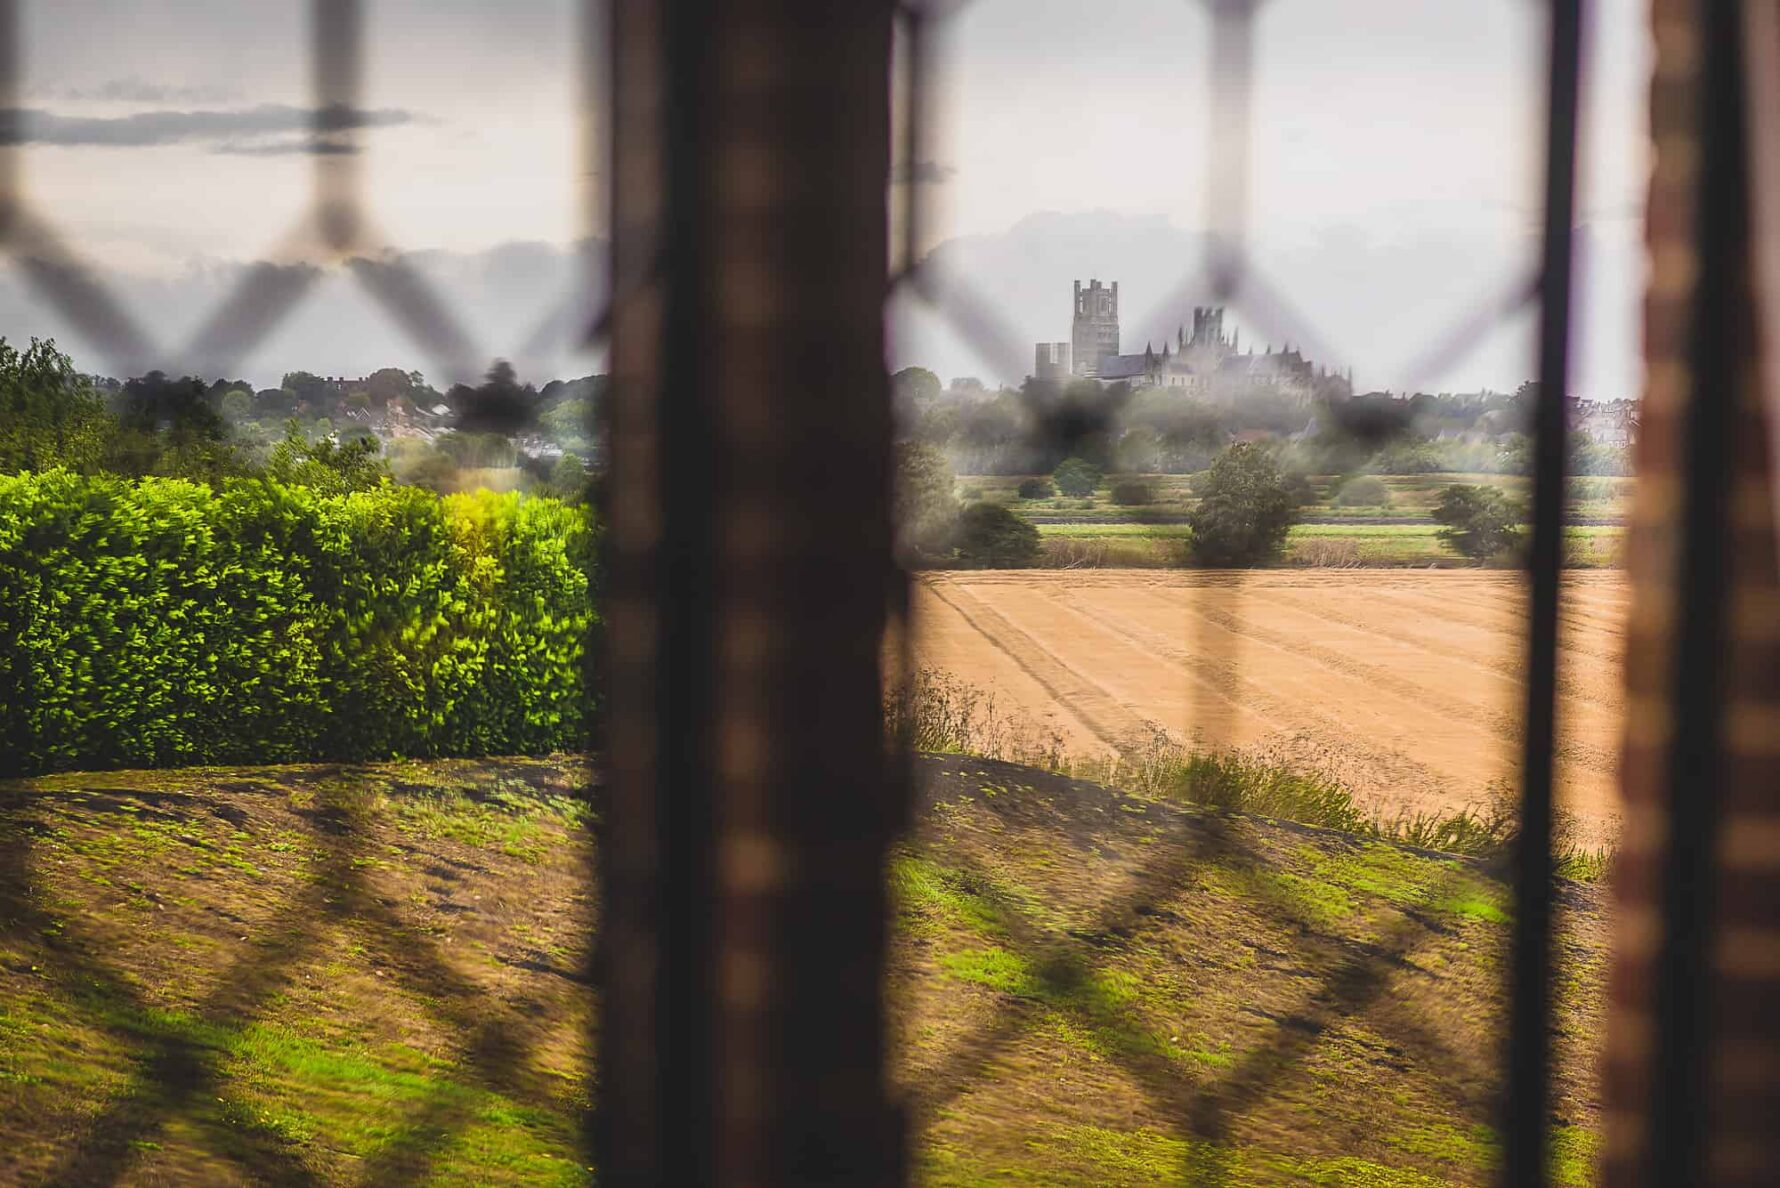 View to Ely Cathedral from the bridal suit at The Old Hall, Ely